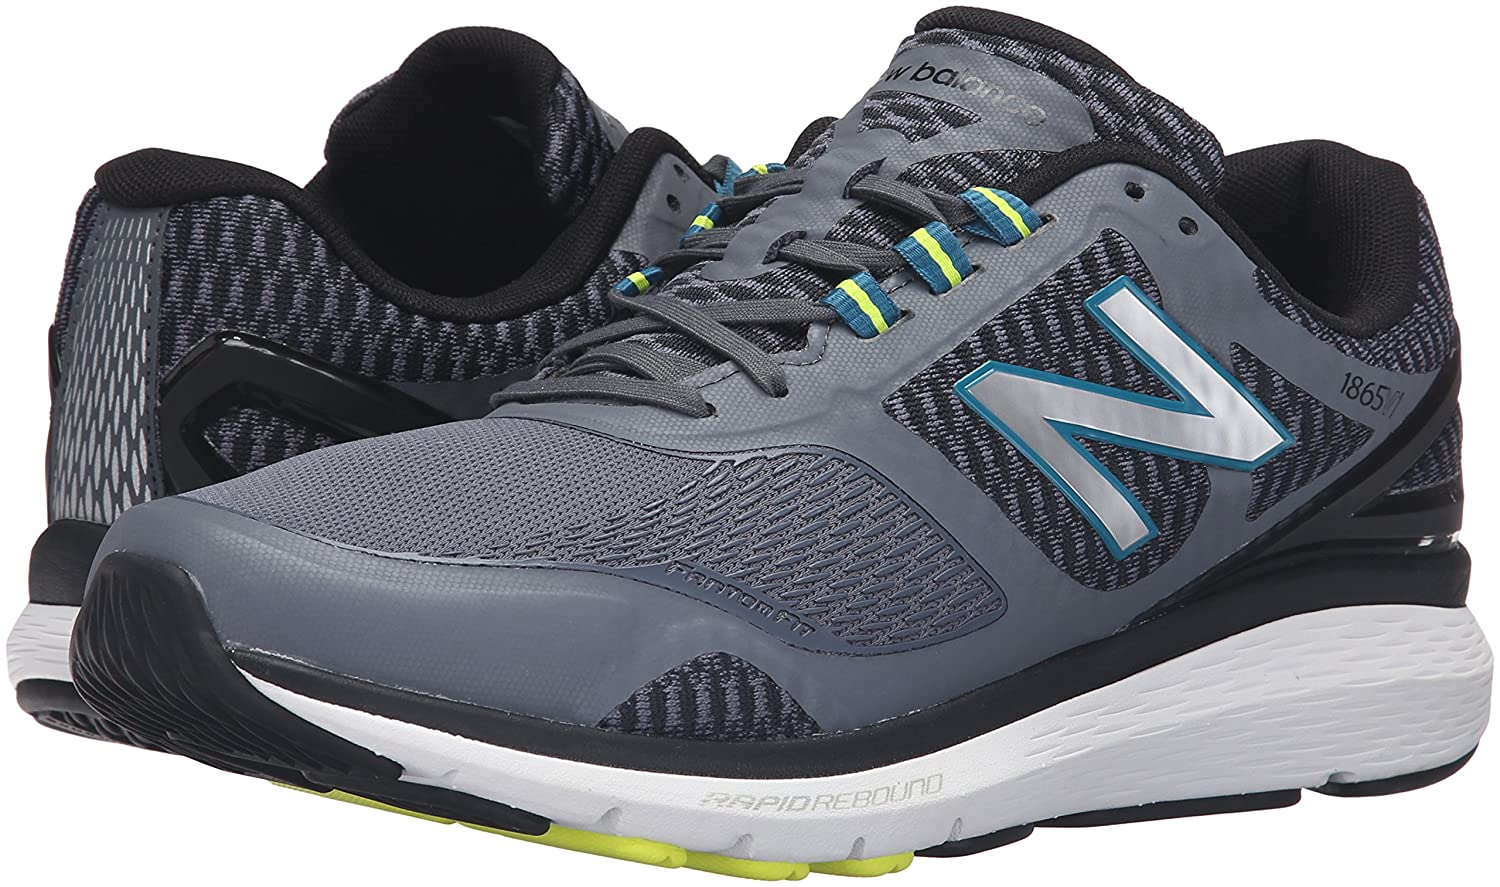 New Balance Sko Menns Amazon zvVjYR6X